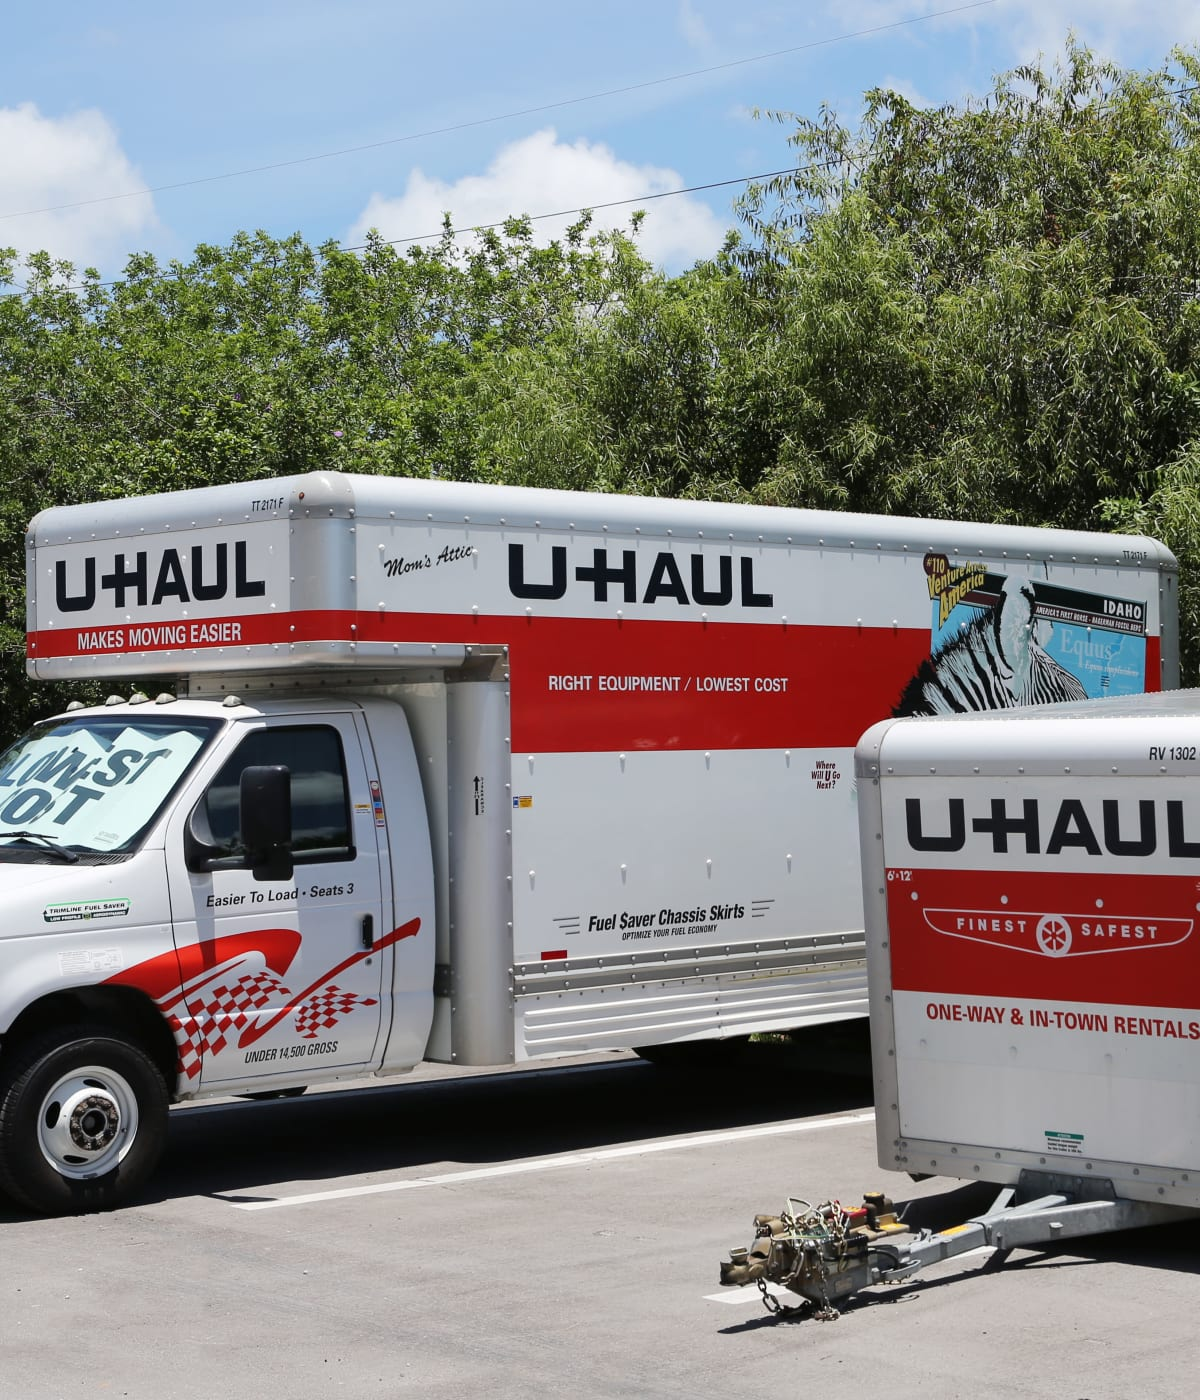 Midgard Self Storage in Naples, Florida, has moving trucks for rent